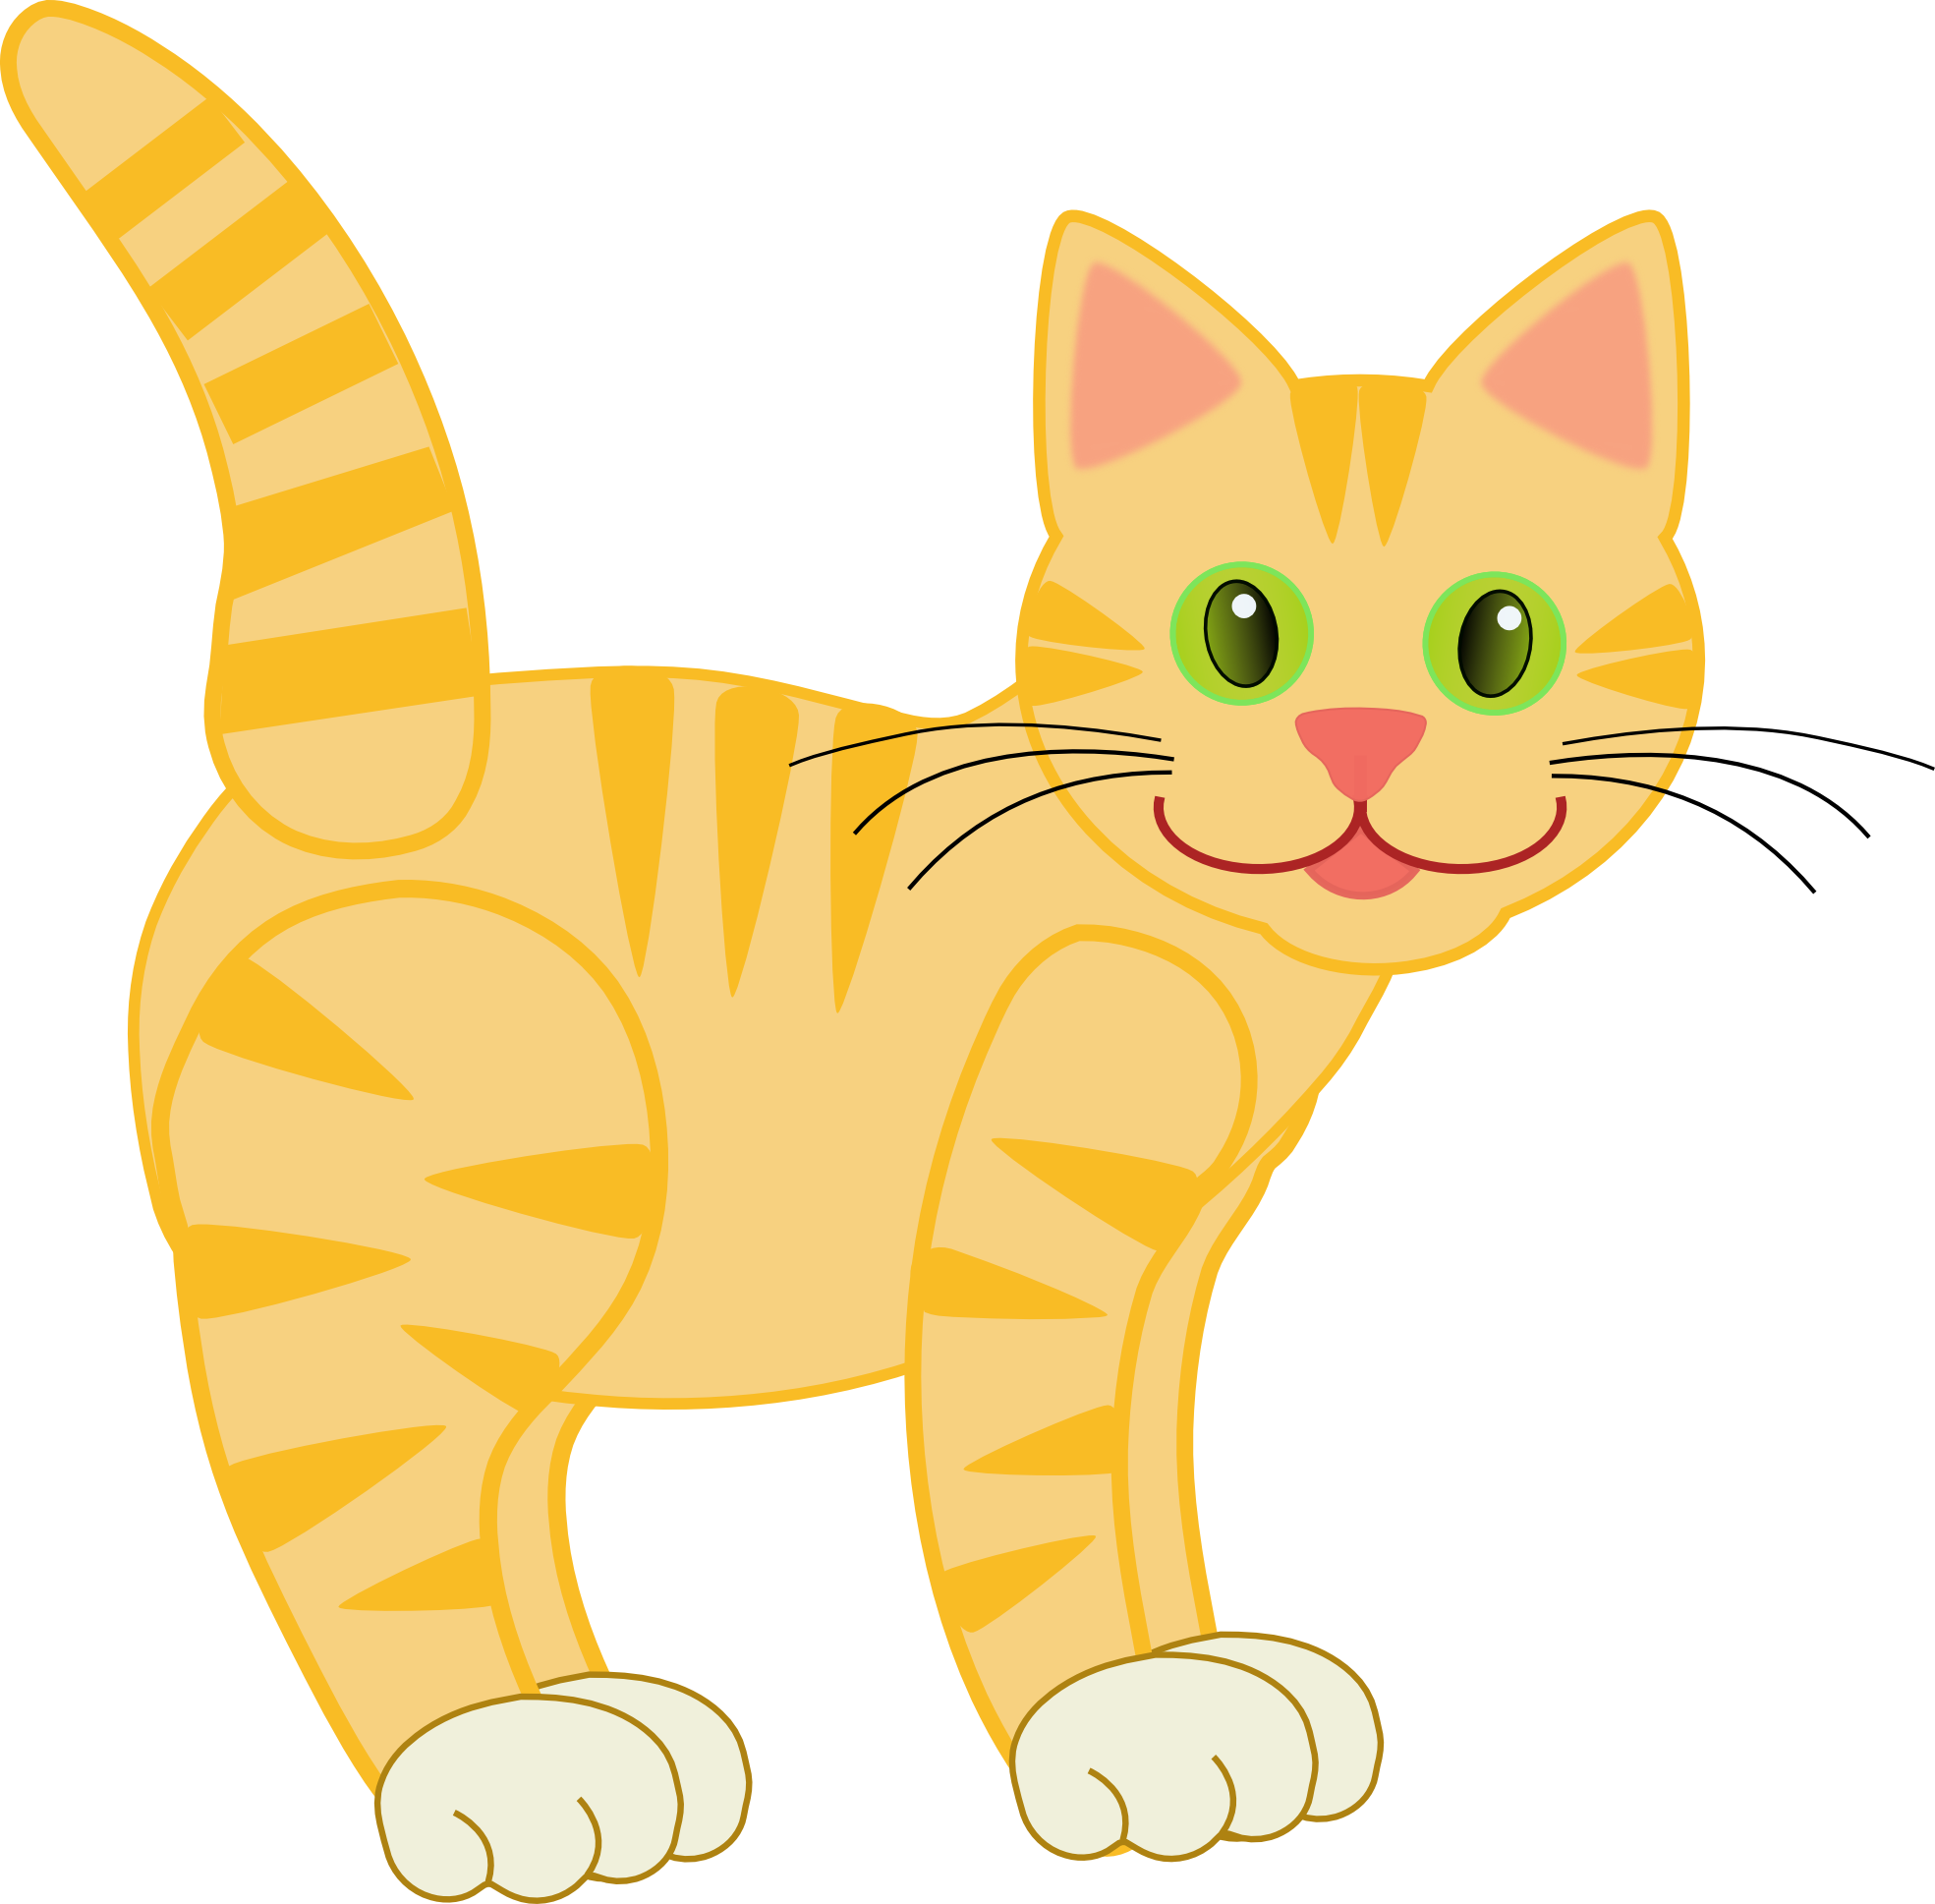 Boy and cat clipart vector free download Clip art version2 yellow tiger cat | 15.10.8 | Pinterest | Clip art ... vector free download